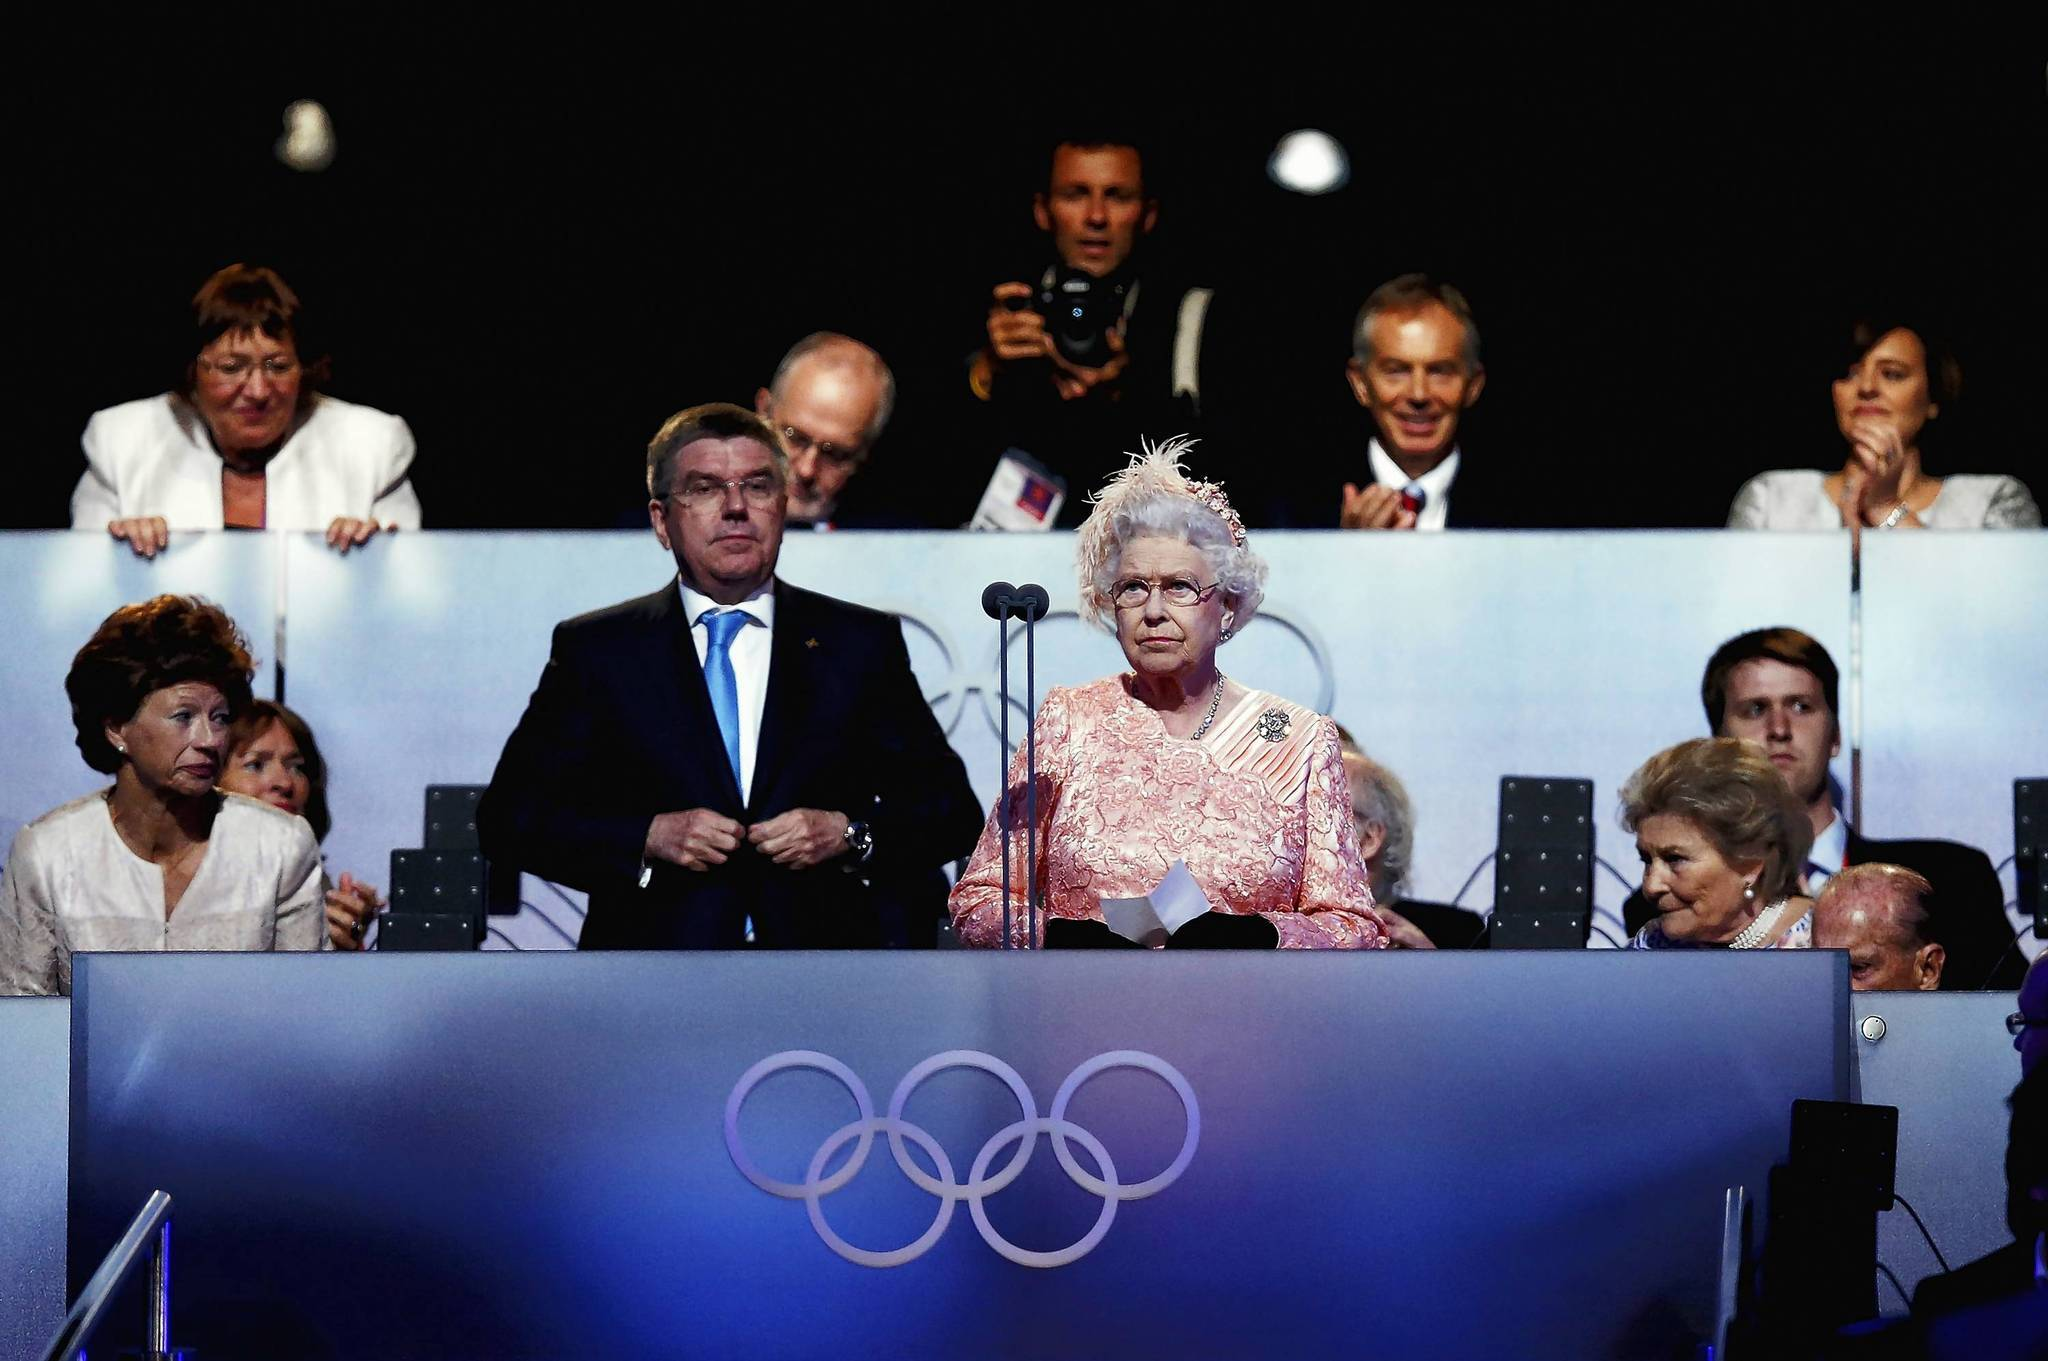 La reina Isabel II habla durante la ceremonia de apertura de los Juegos Olmpicos.